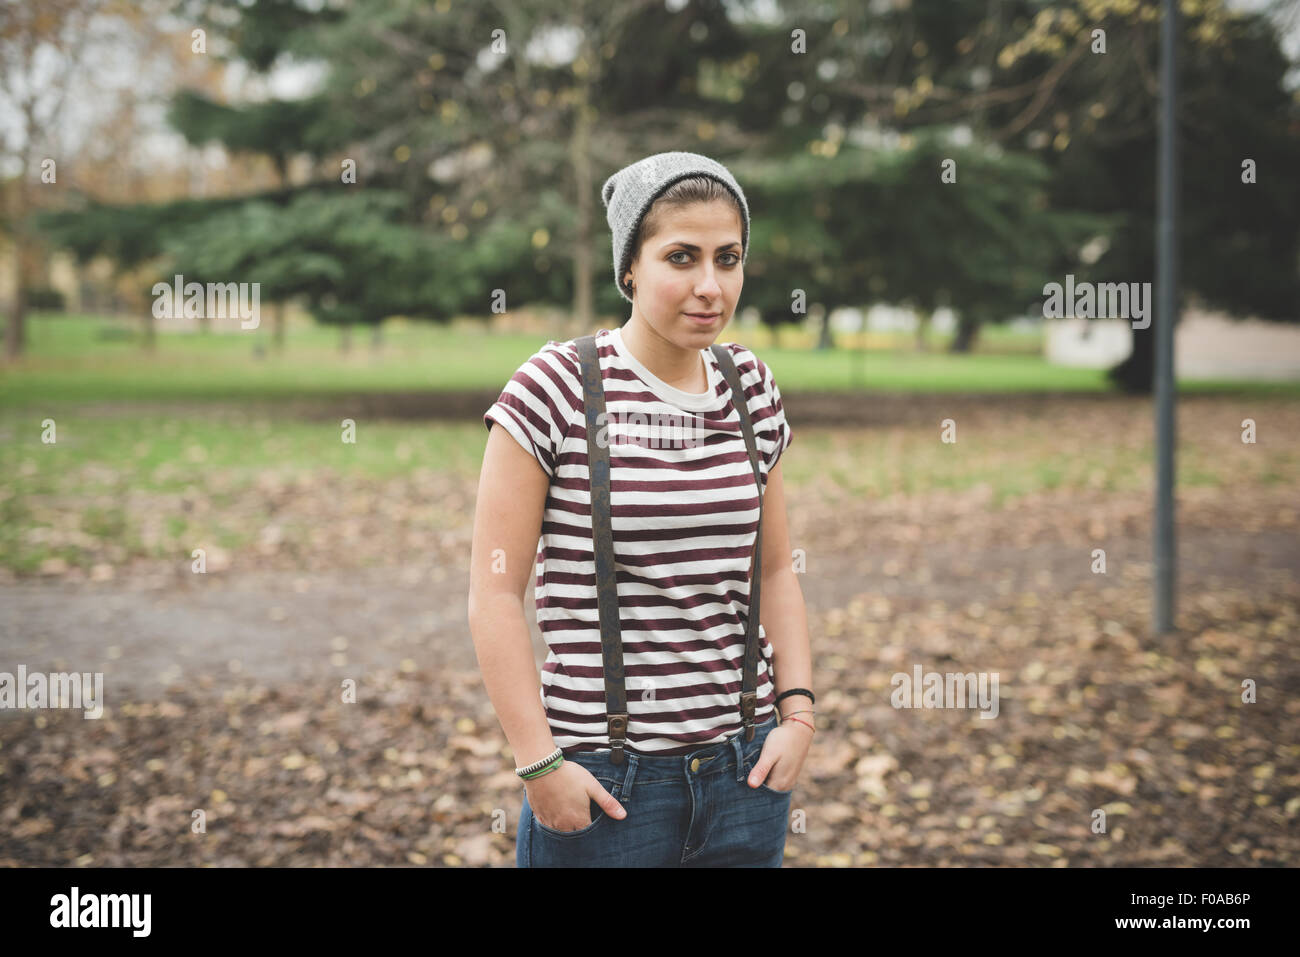 Teenager in park - Stock Image